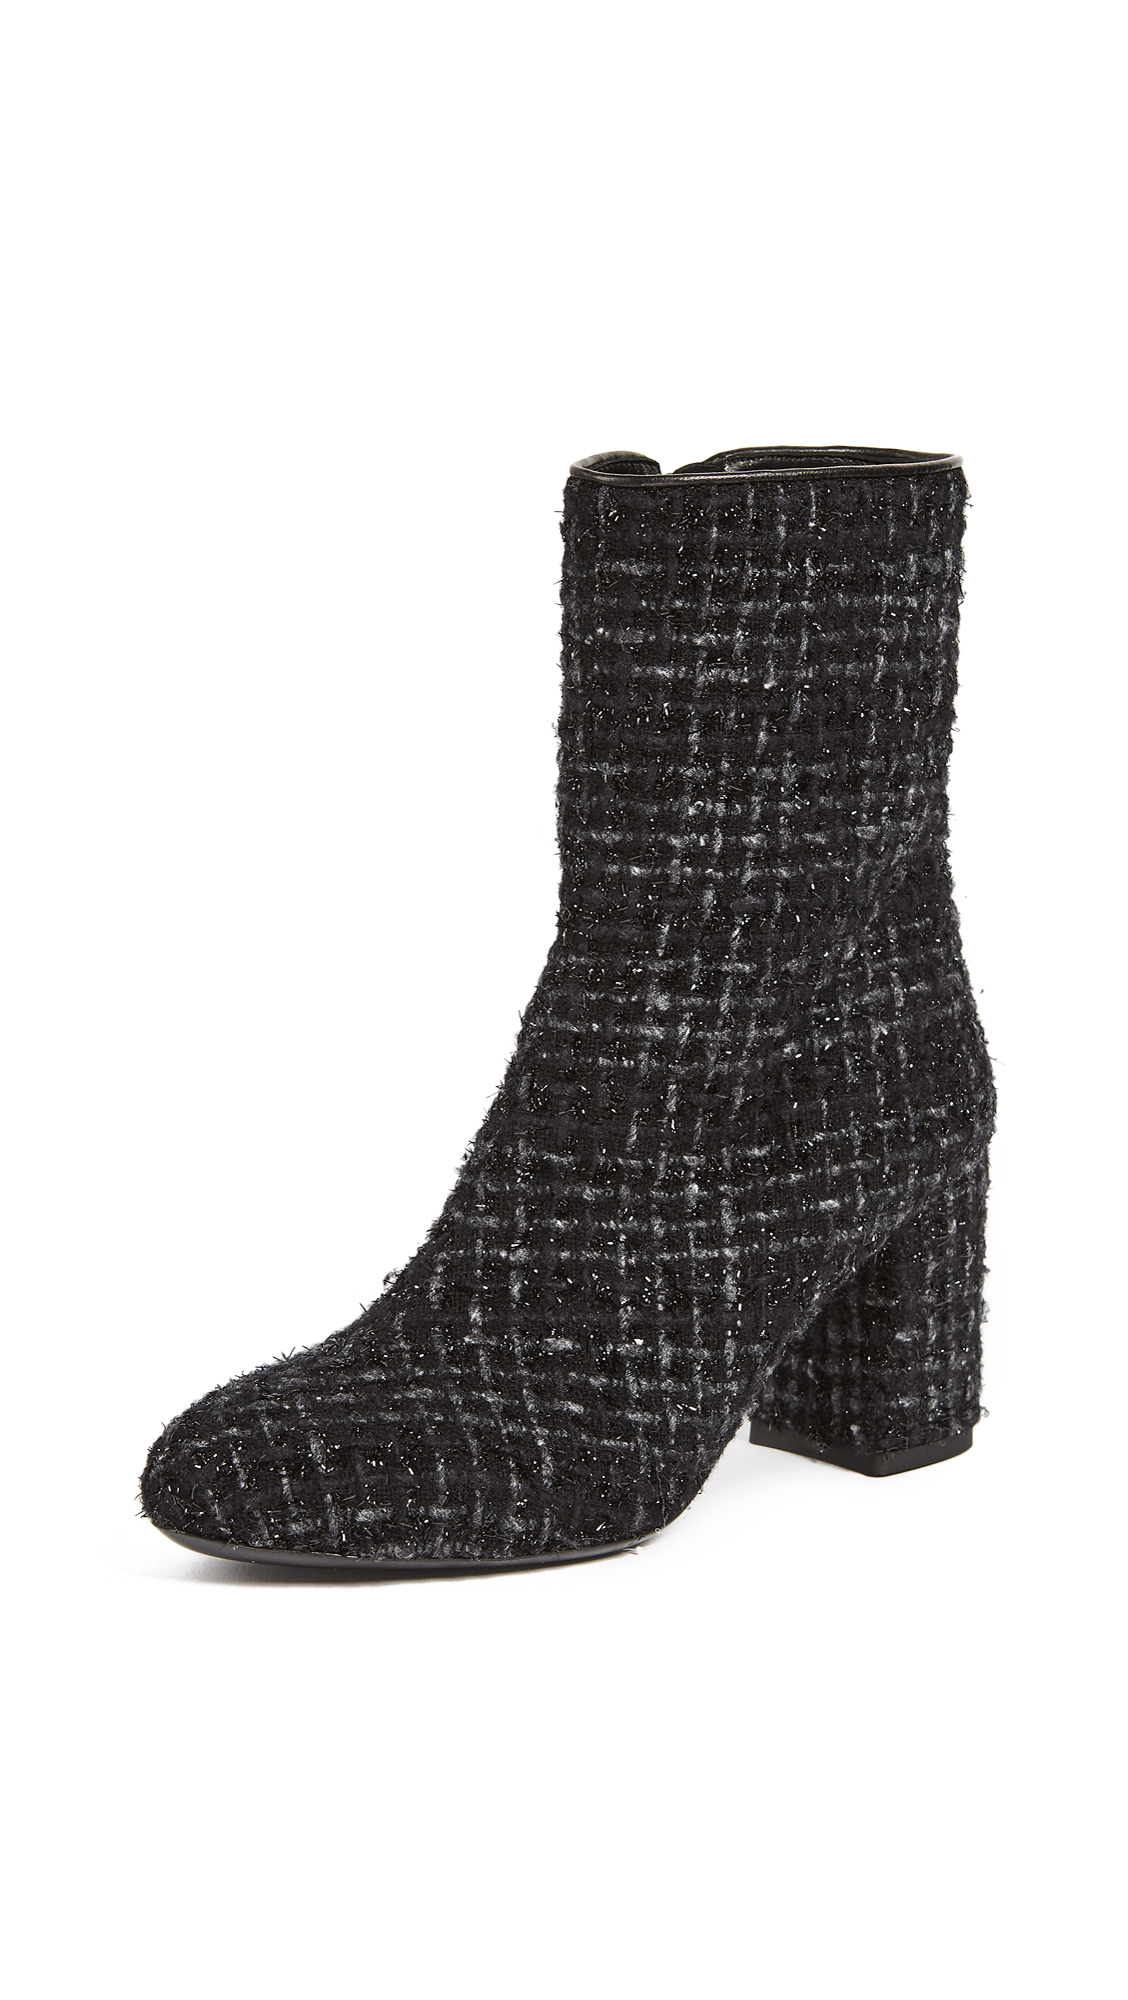 Eugenia Kim Fran Booties - Black